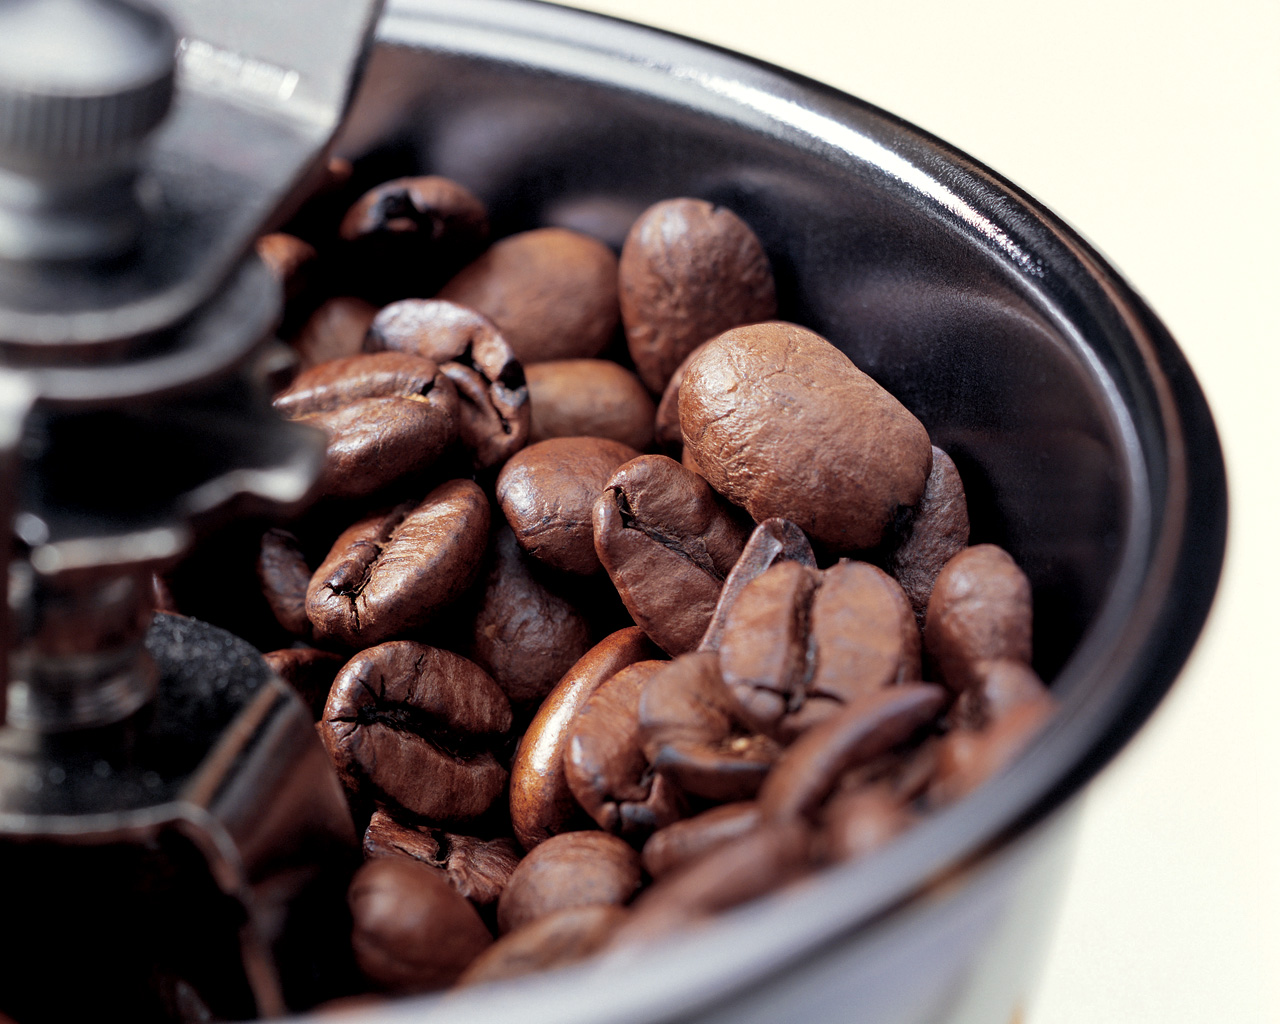 Coffee wallpaper high definition 641